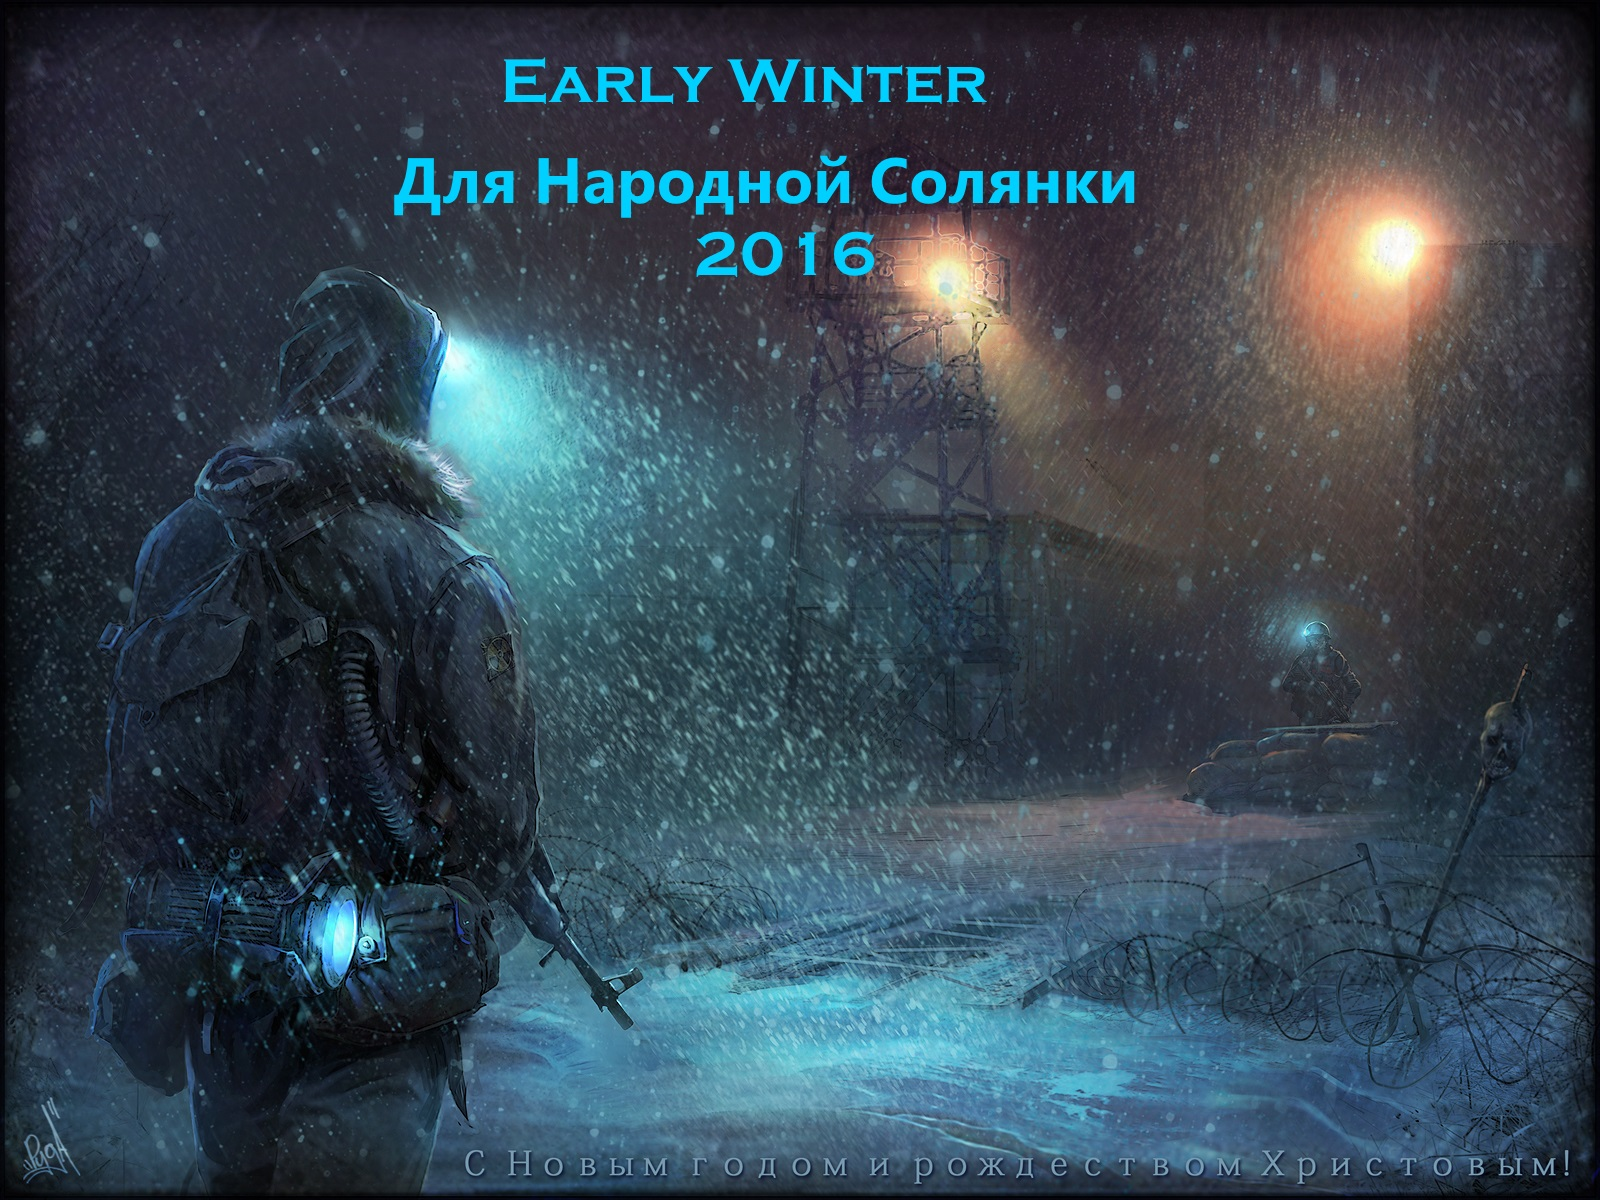 Early Winter 2016 Для Народной Солянки ОП 2